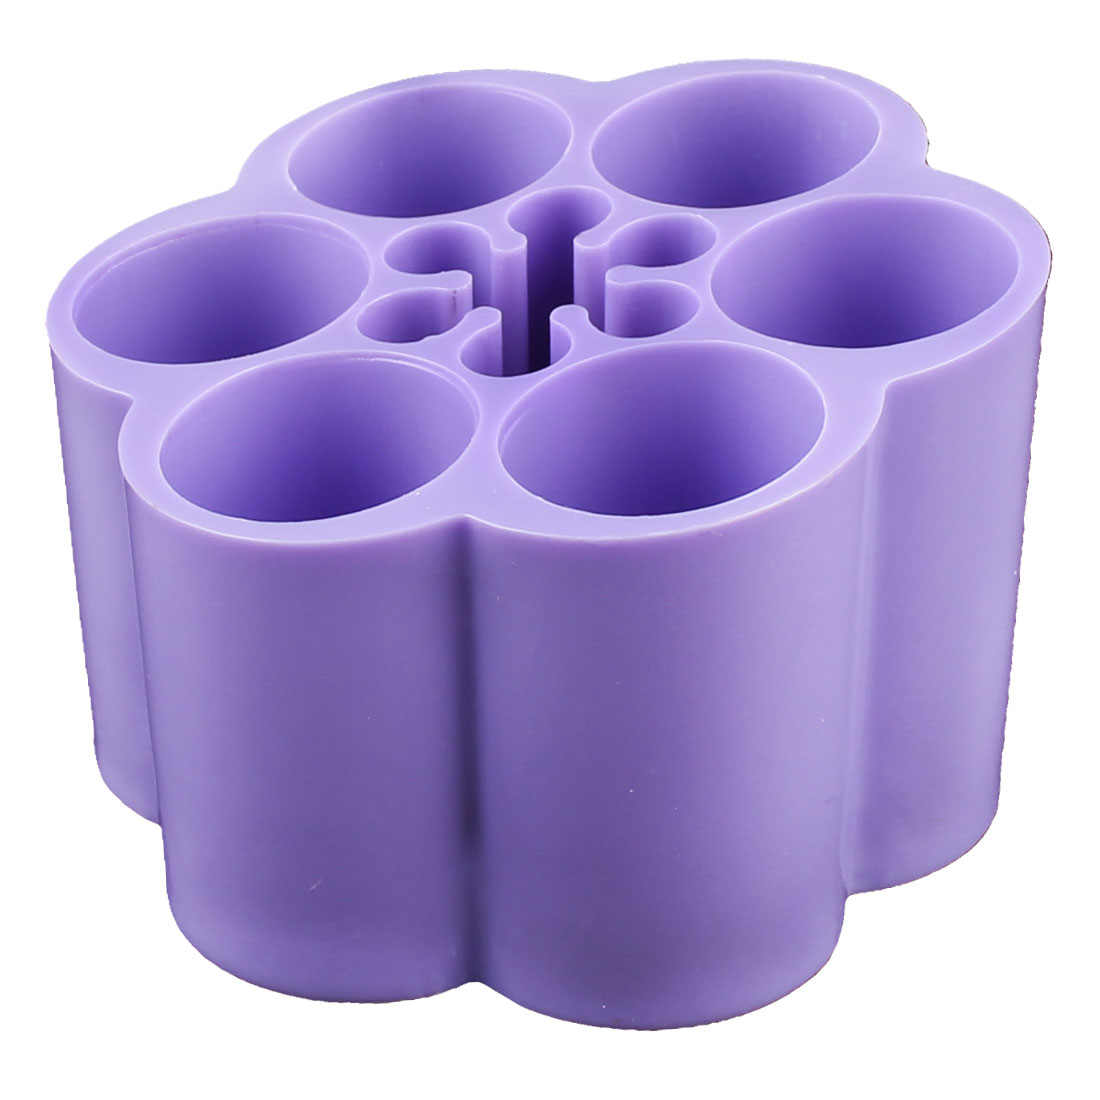 Household Desktop Plastic Cosmetic Makeup Tools Organizer Storage Box Holder Purple